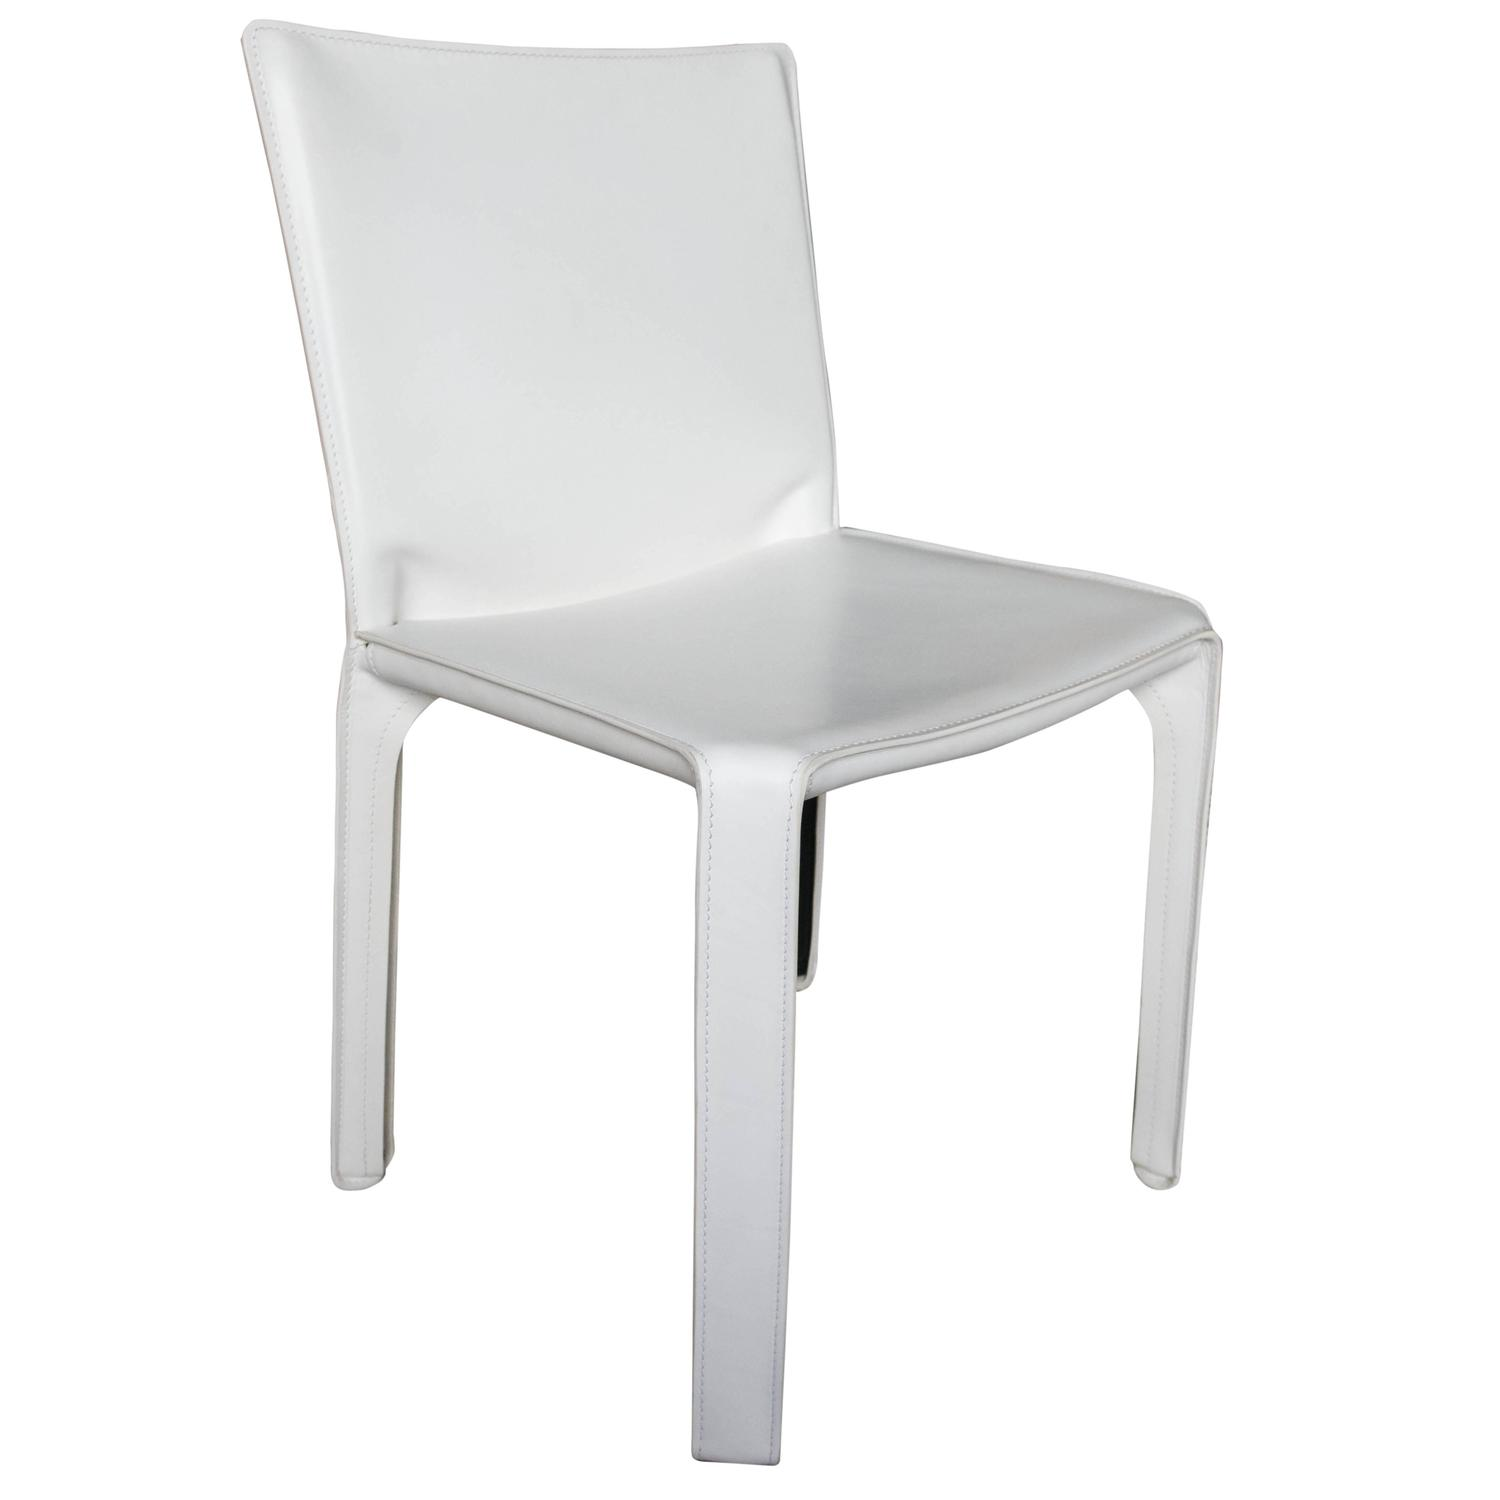 white leather chairs for sale lawn heavy people cassina cab chair in at 1stdibs